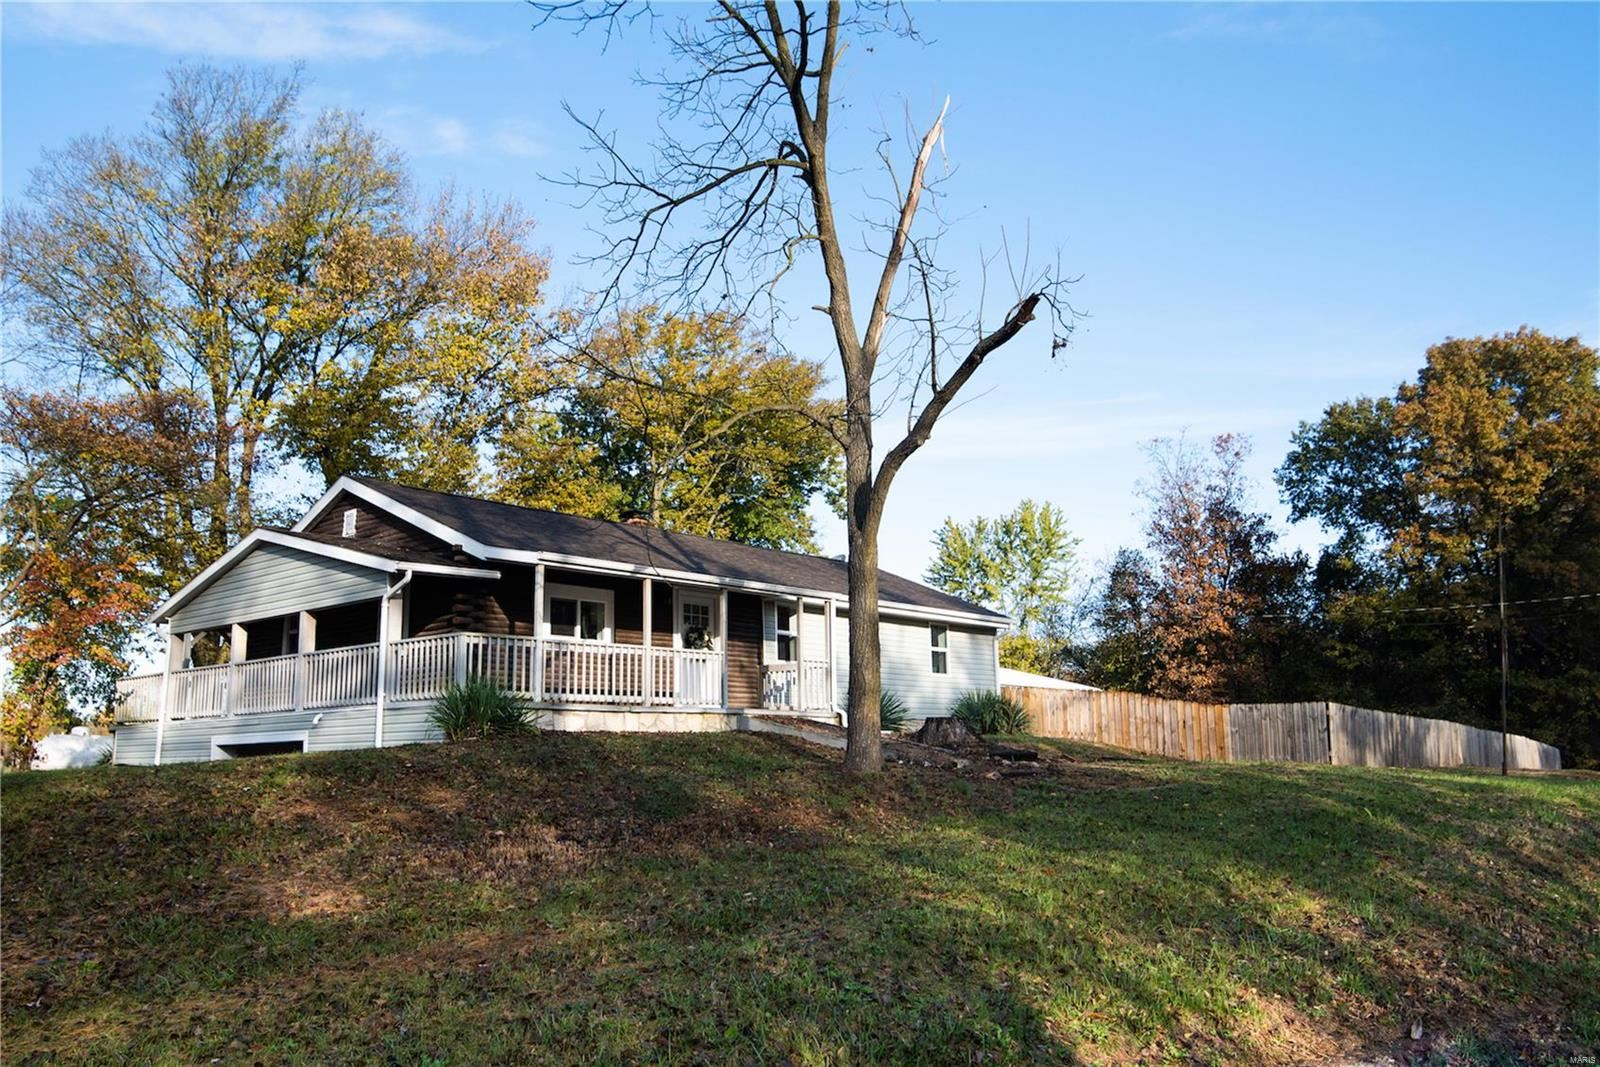 Photo for 9231 County Highway 11, Nashville, IL 62263 (MLS # 19082715)